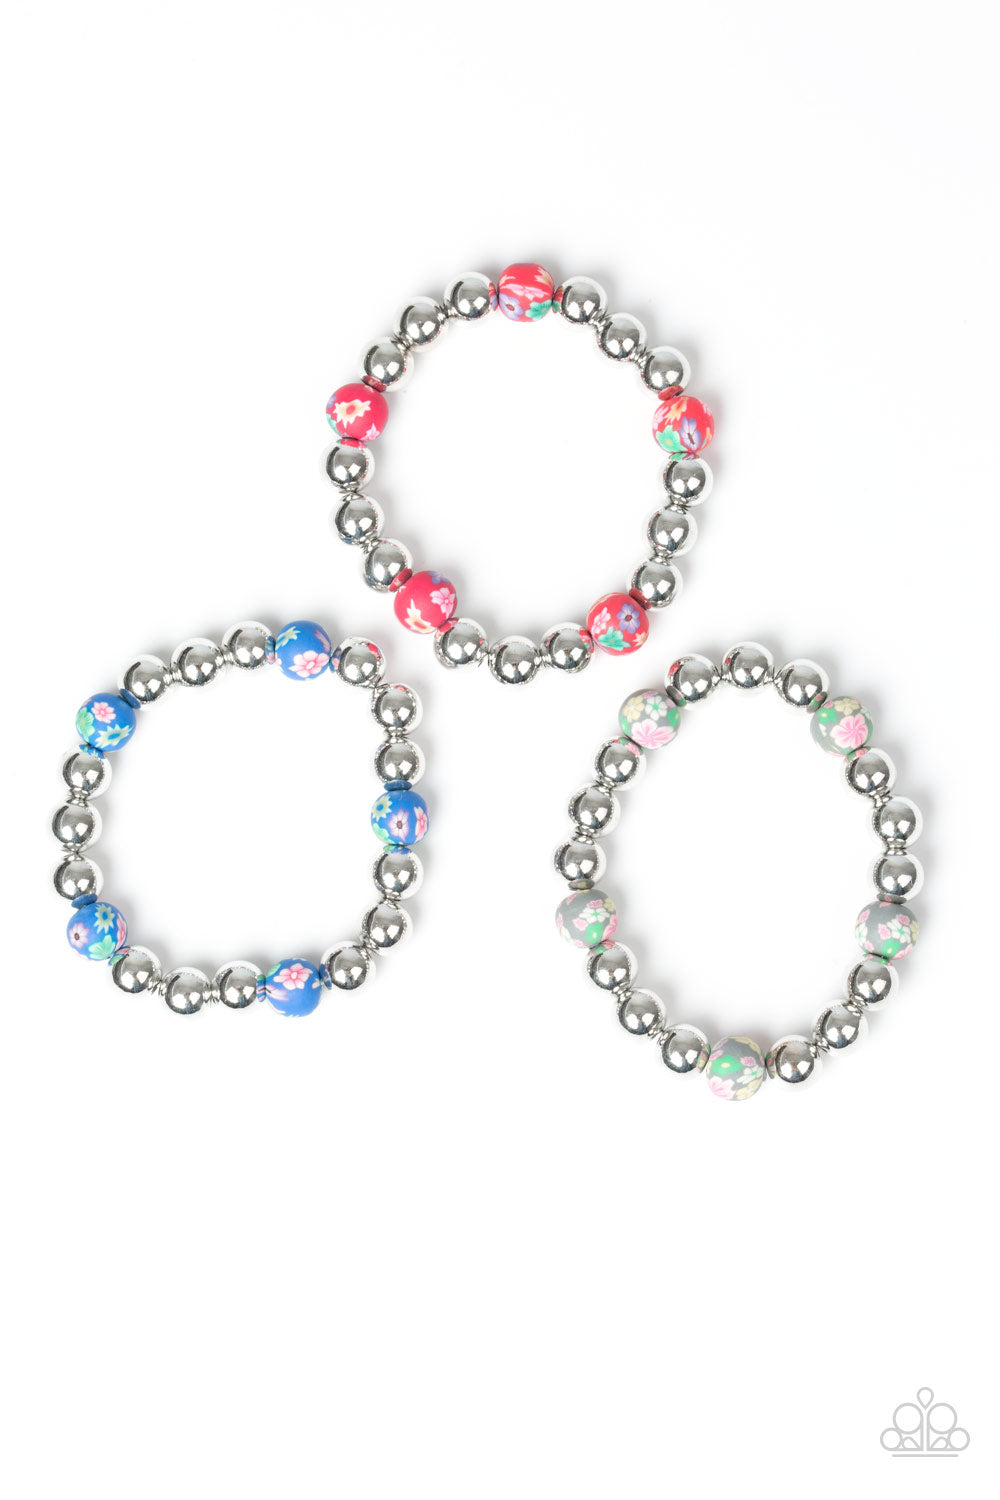 Starlet Shimmer Bracelet Multi-Color - Paparazzi Accessories